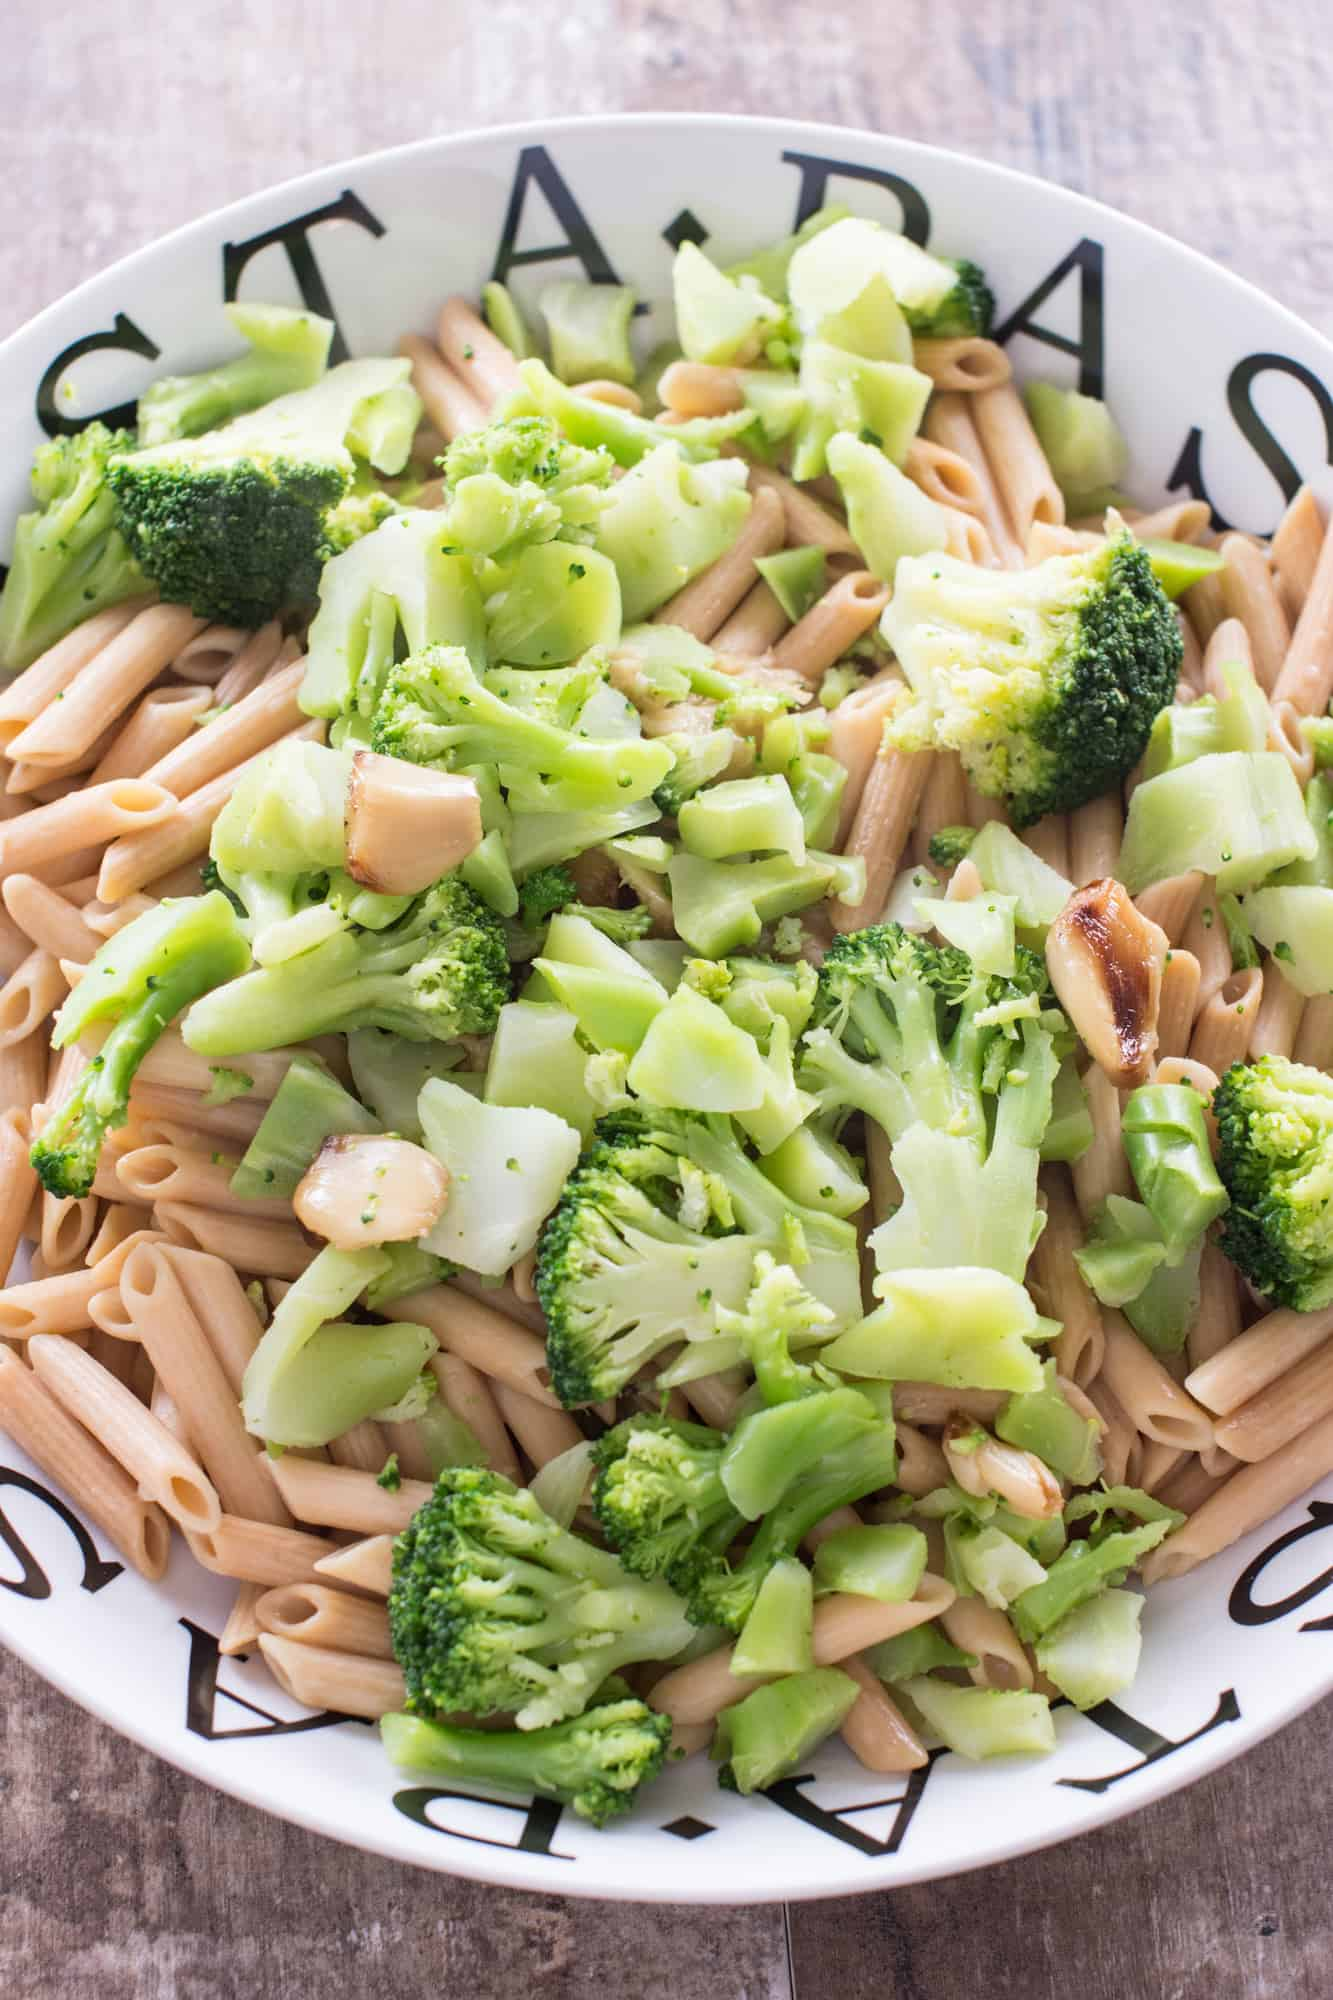 garlic and broccoli added to the pasta